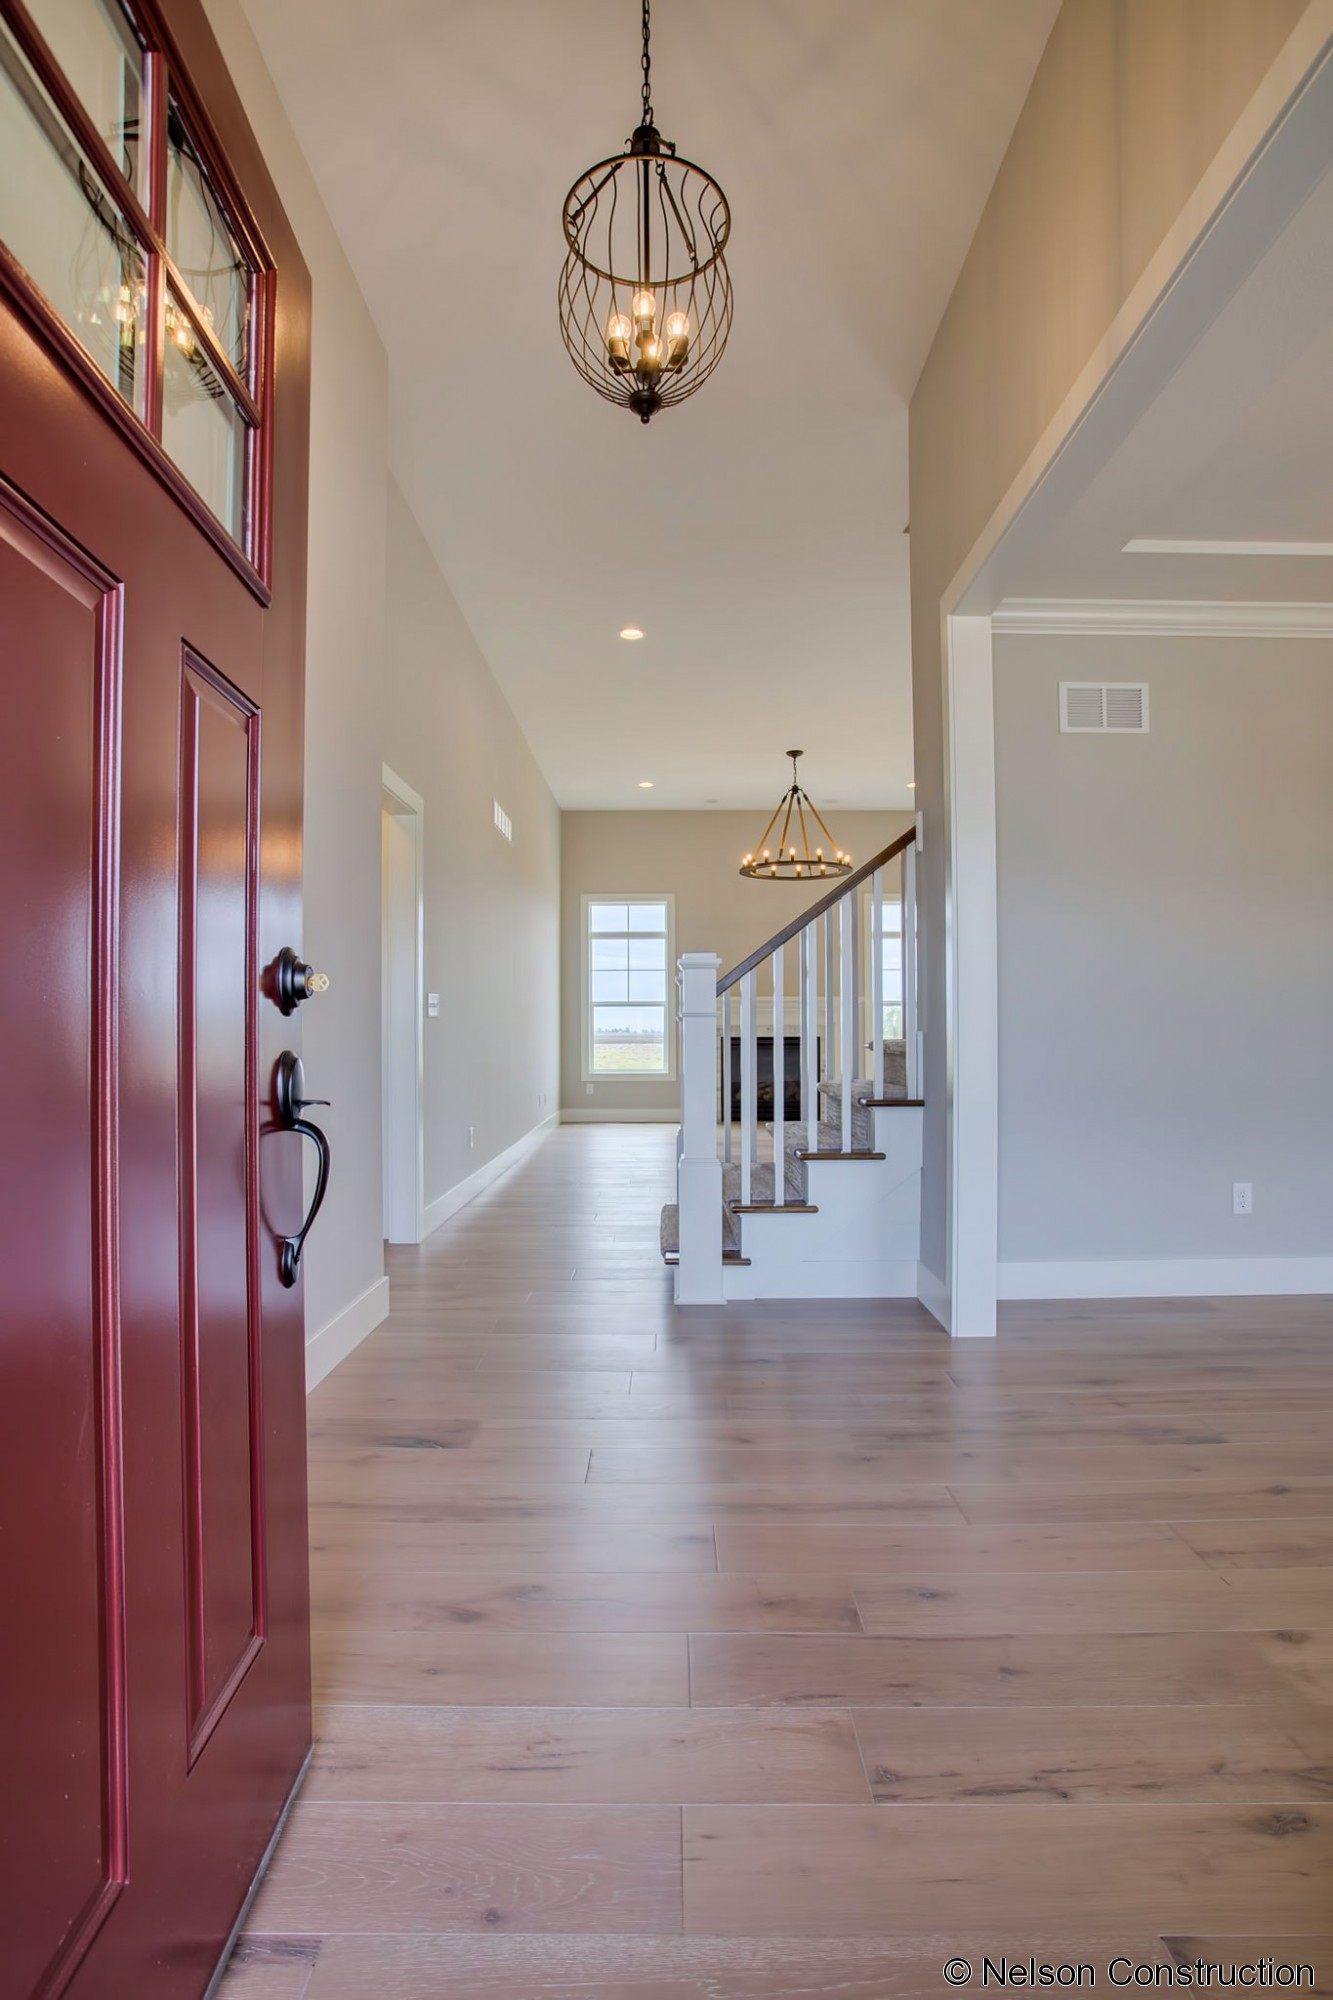 The foyer of this new home is light and airy with its transom windows, a welcome entrance to this new home.